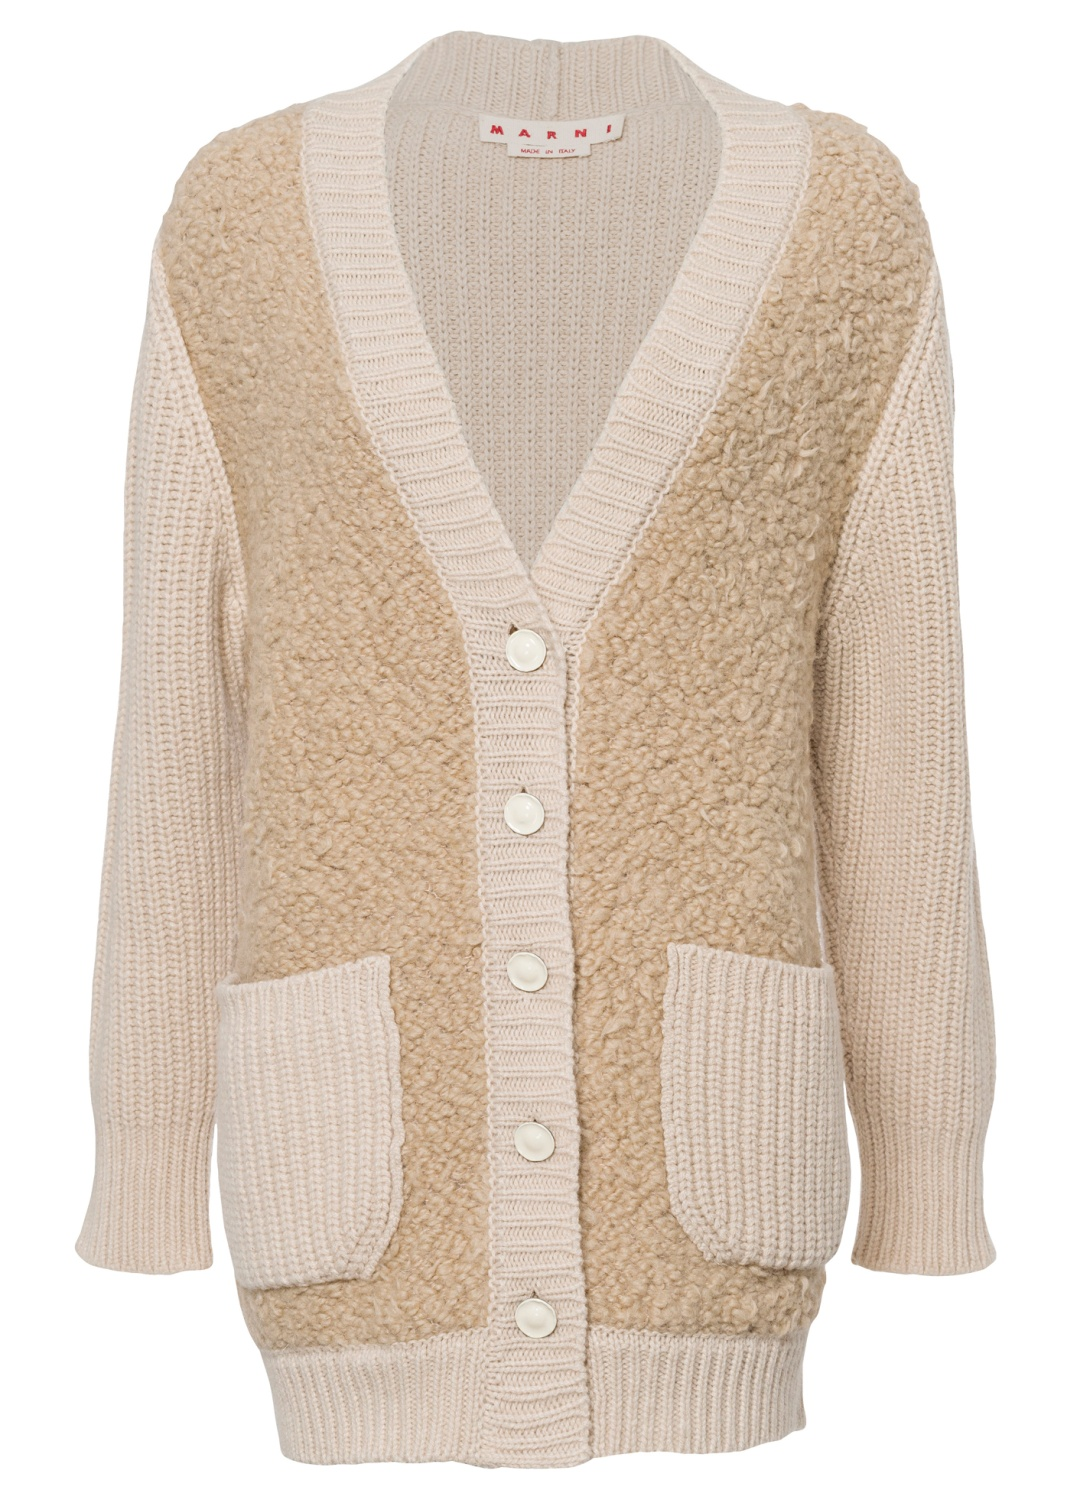 CAPPOTTO M.L. image number 0